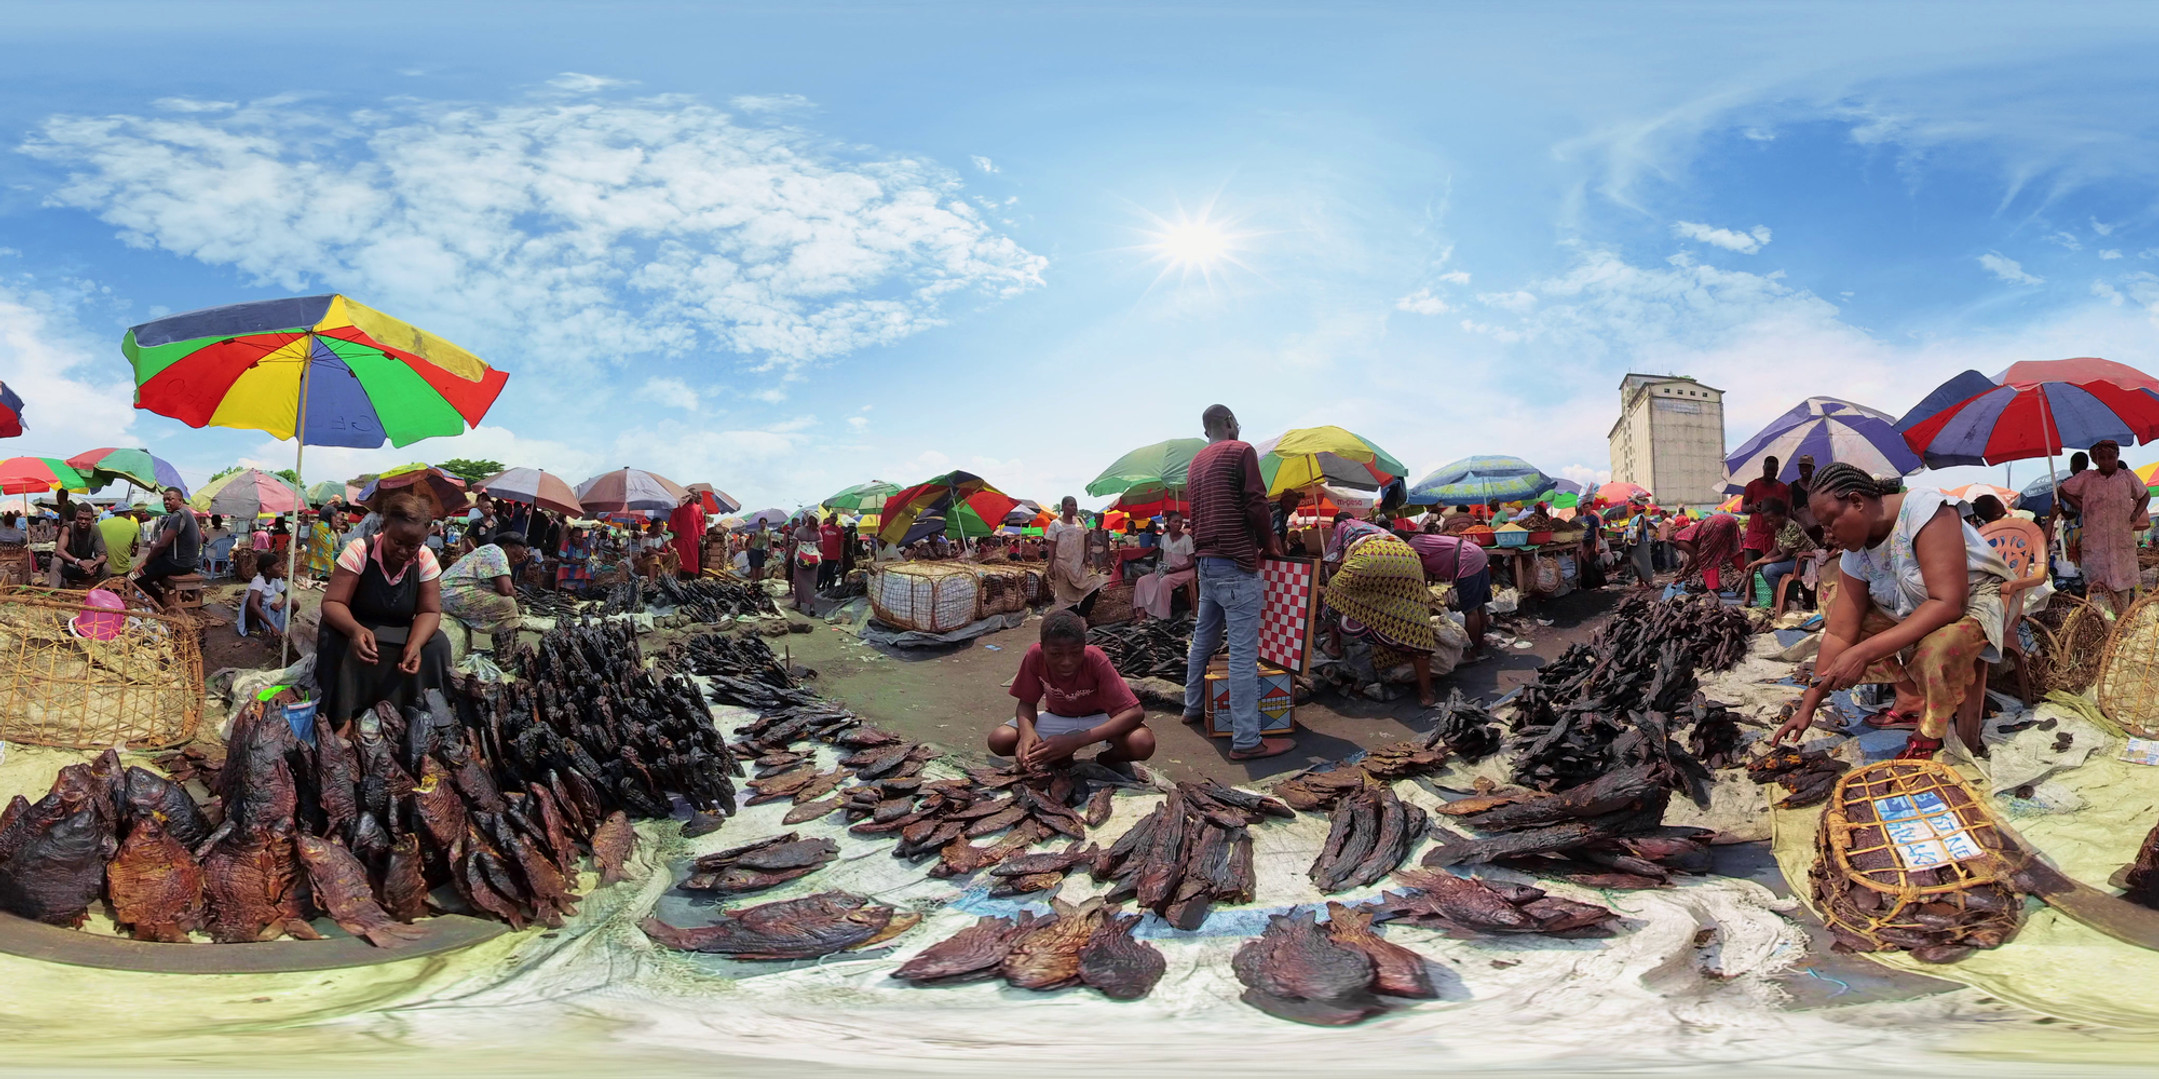 Kinshasa_Now_Still_Fish Market.jpg